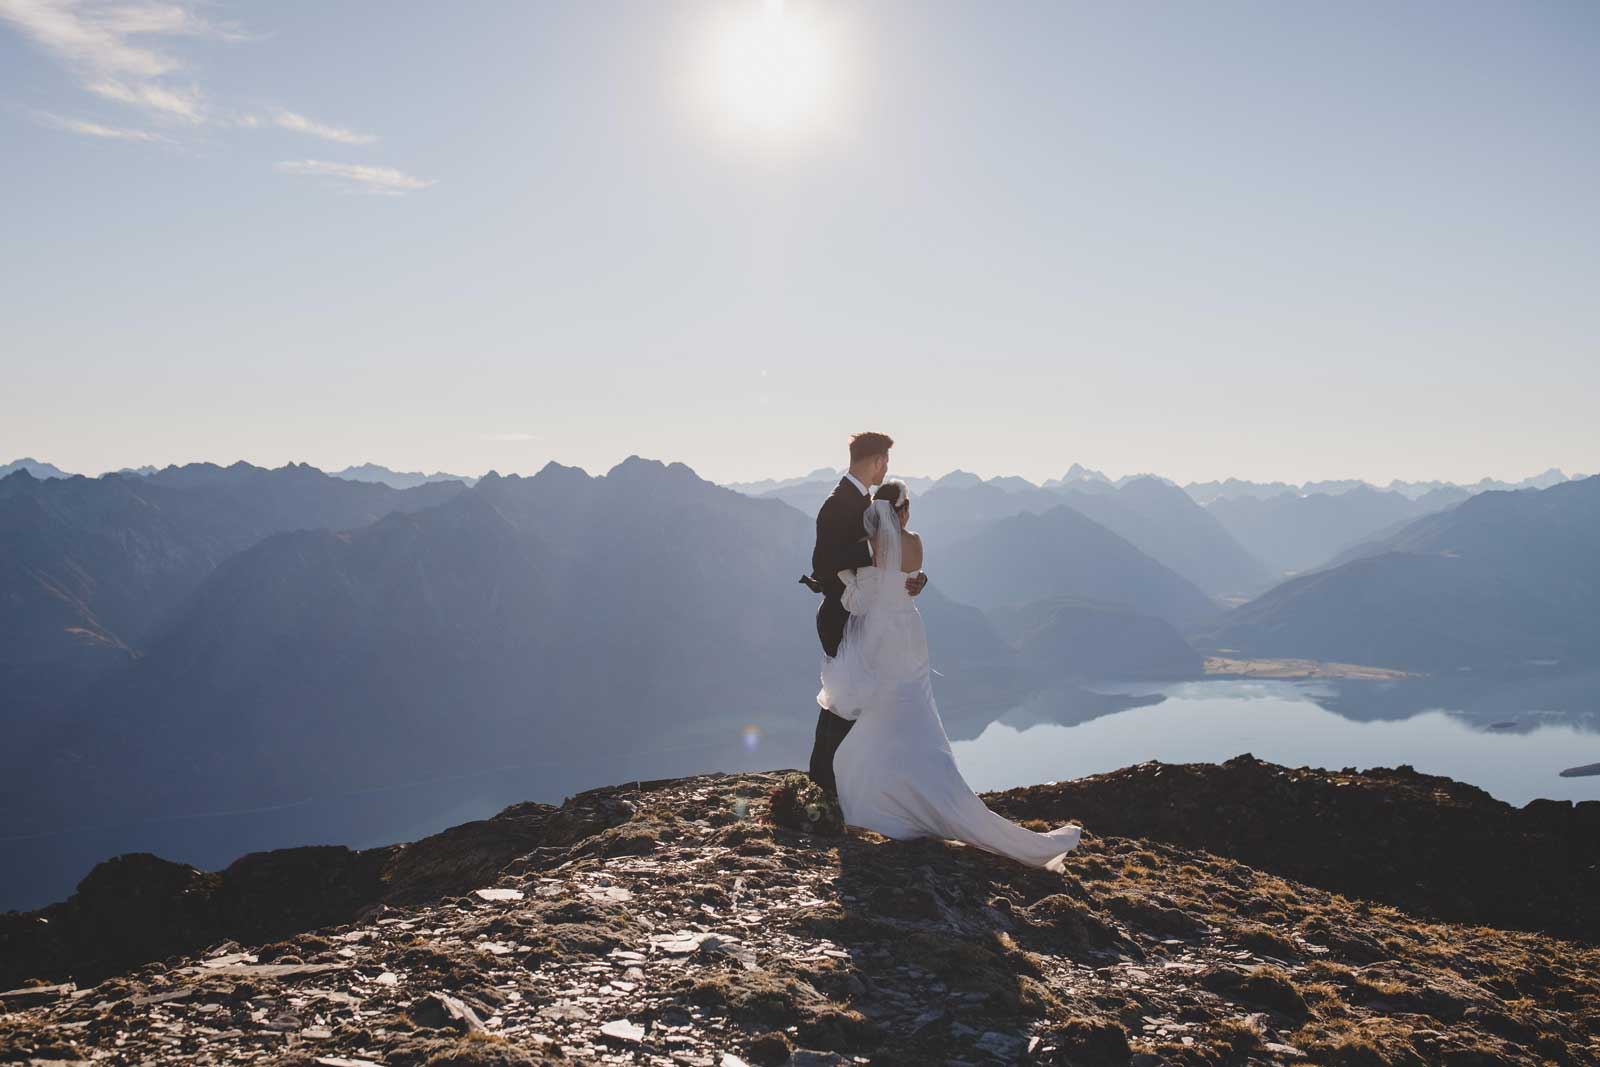 06 Bride And Groom Mountainscape